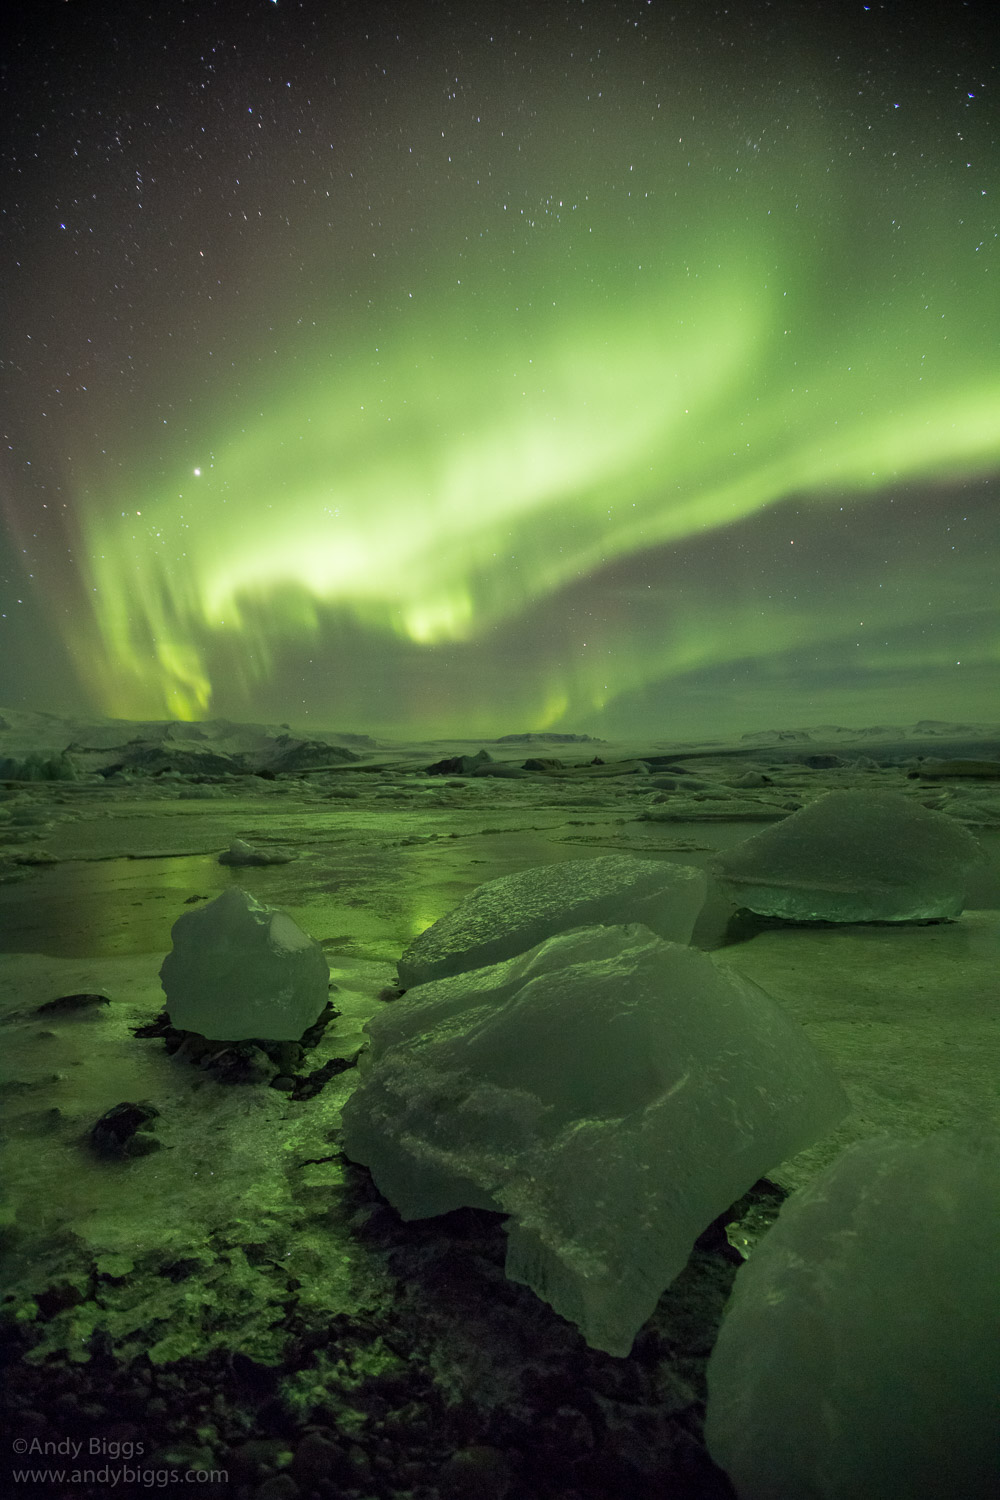 AndyBiggs_031013_Iceland_116.jpg